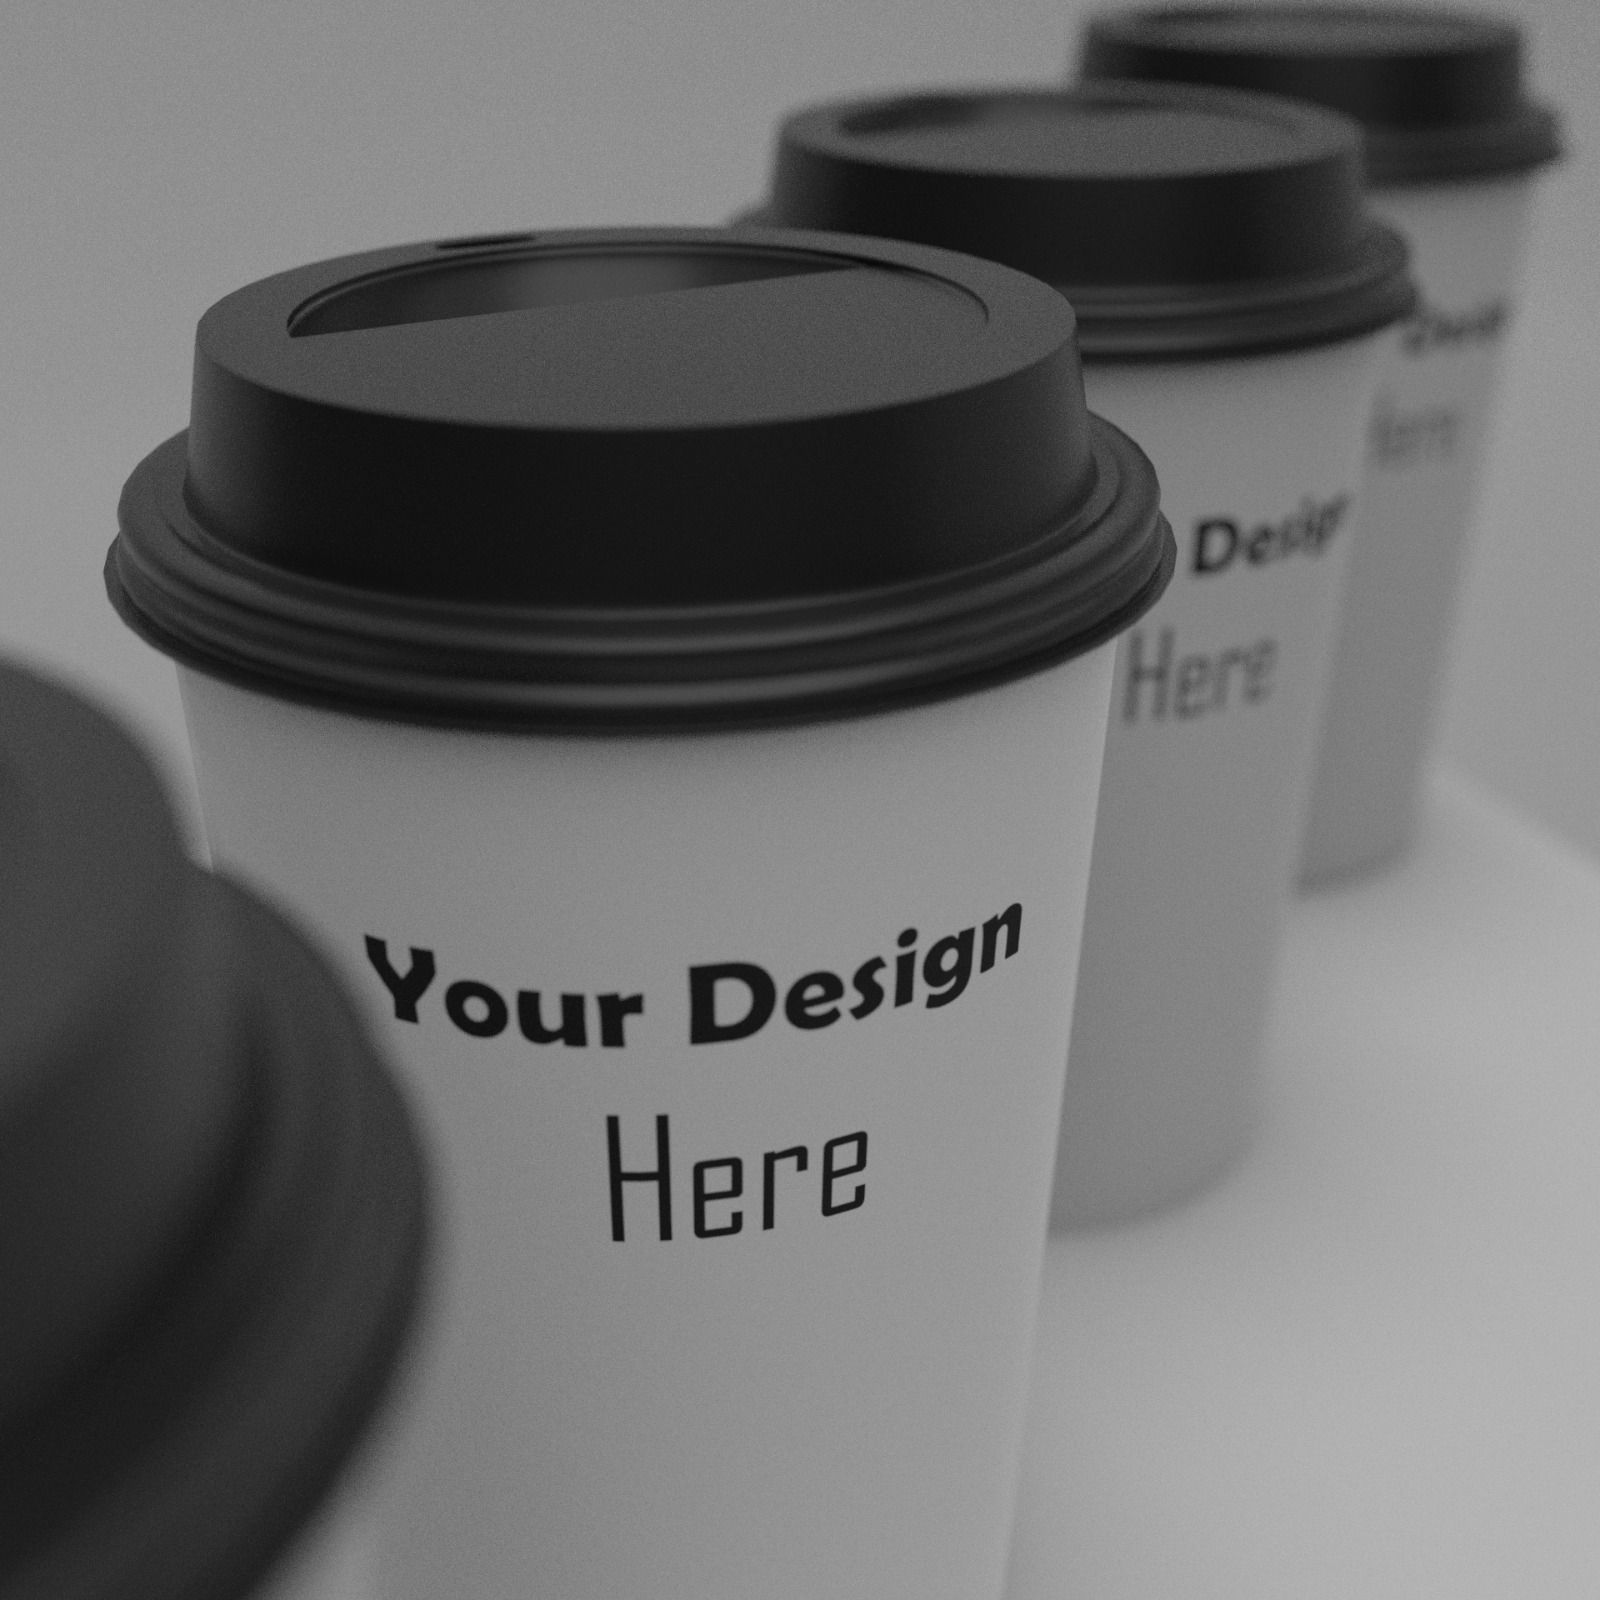 Just my newest prototype mockups. This coffe Cup mockup